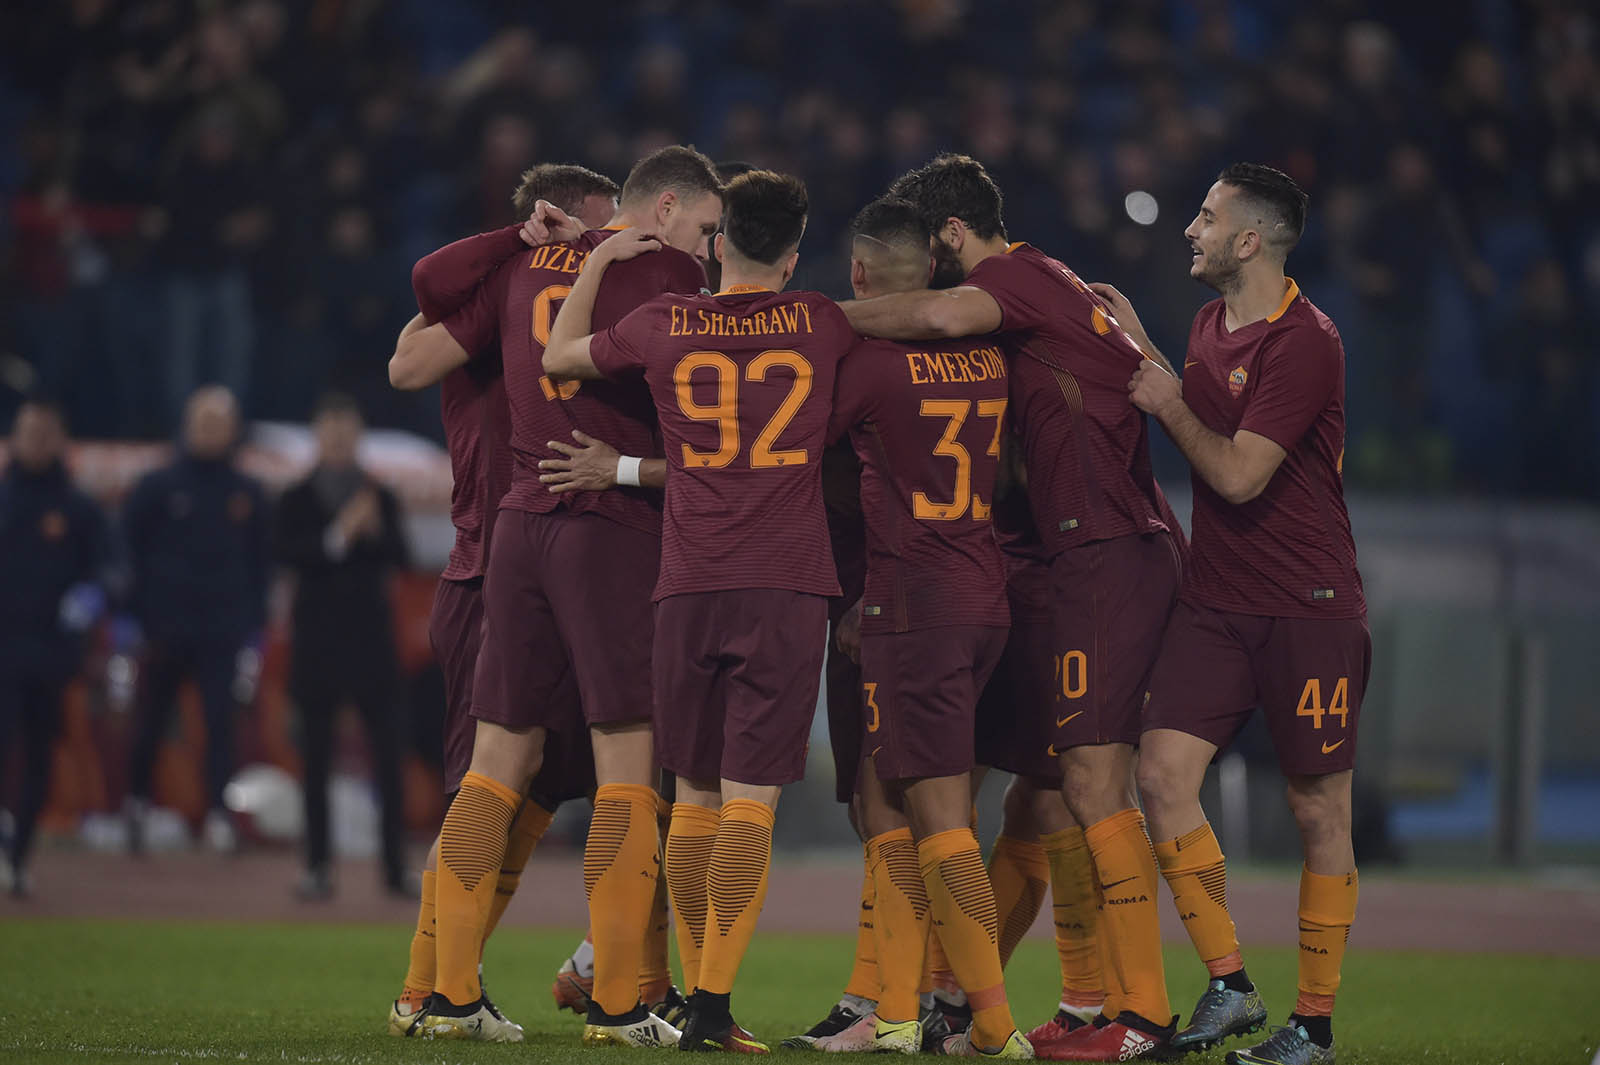 http://res.cloudinary.com/as-roma-turbine-production/image/upload/v1/asroma-uat/rldtarzrmqgxqaudw73p